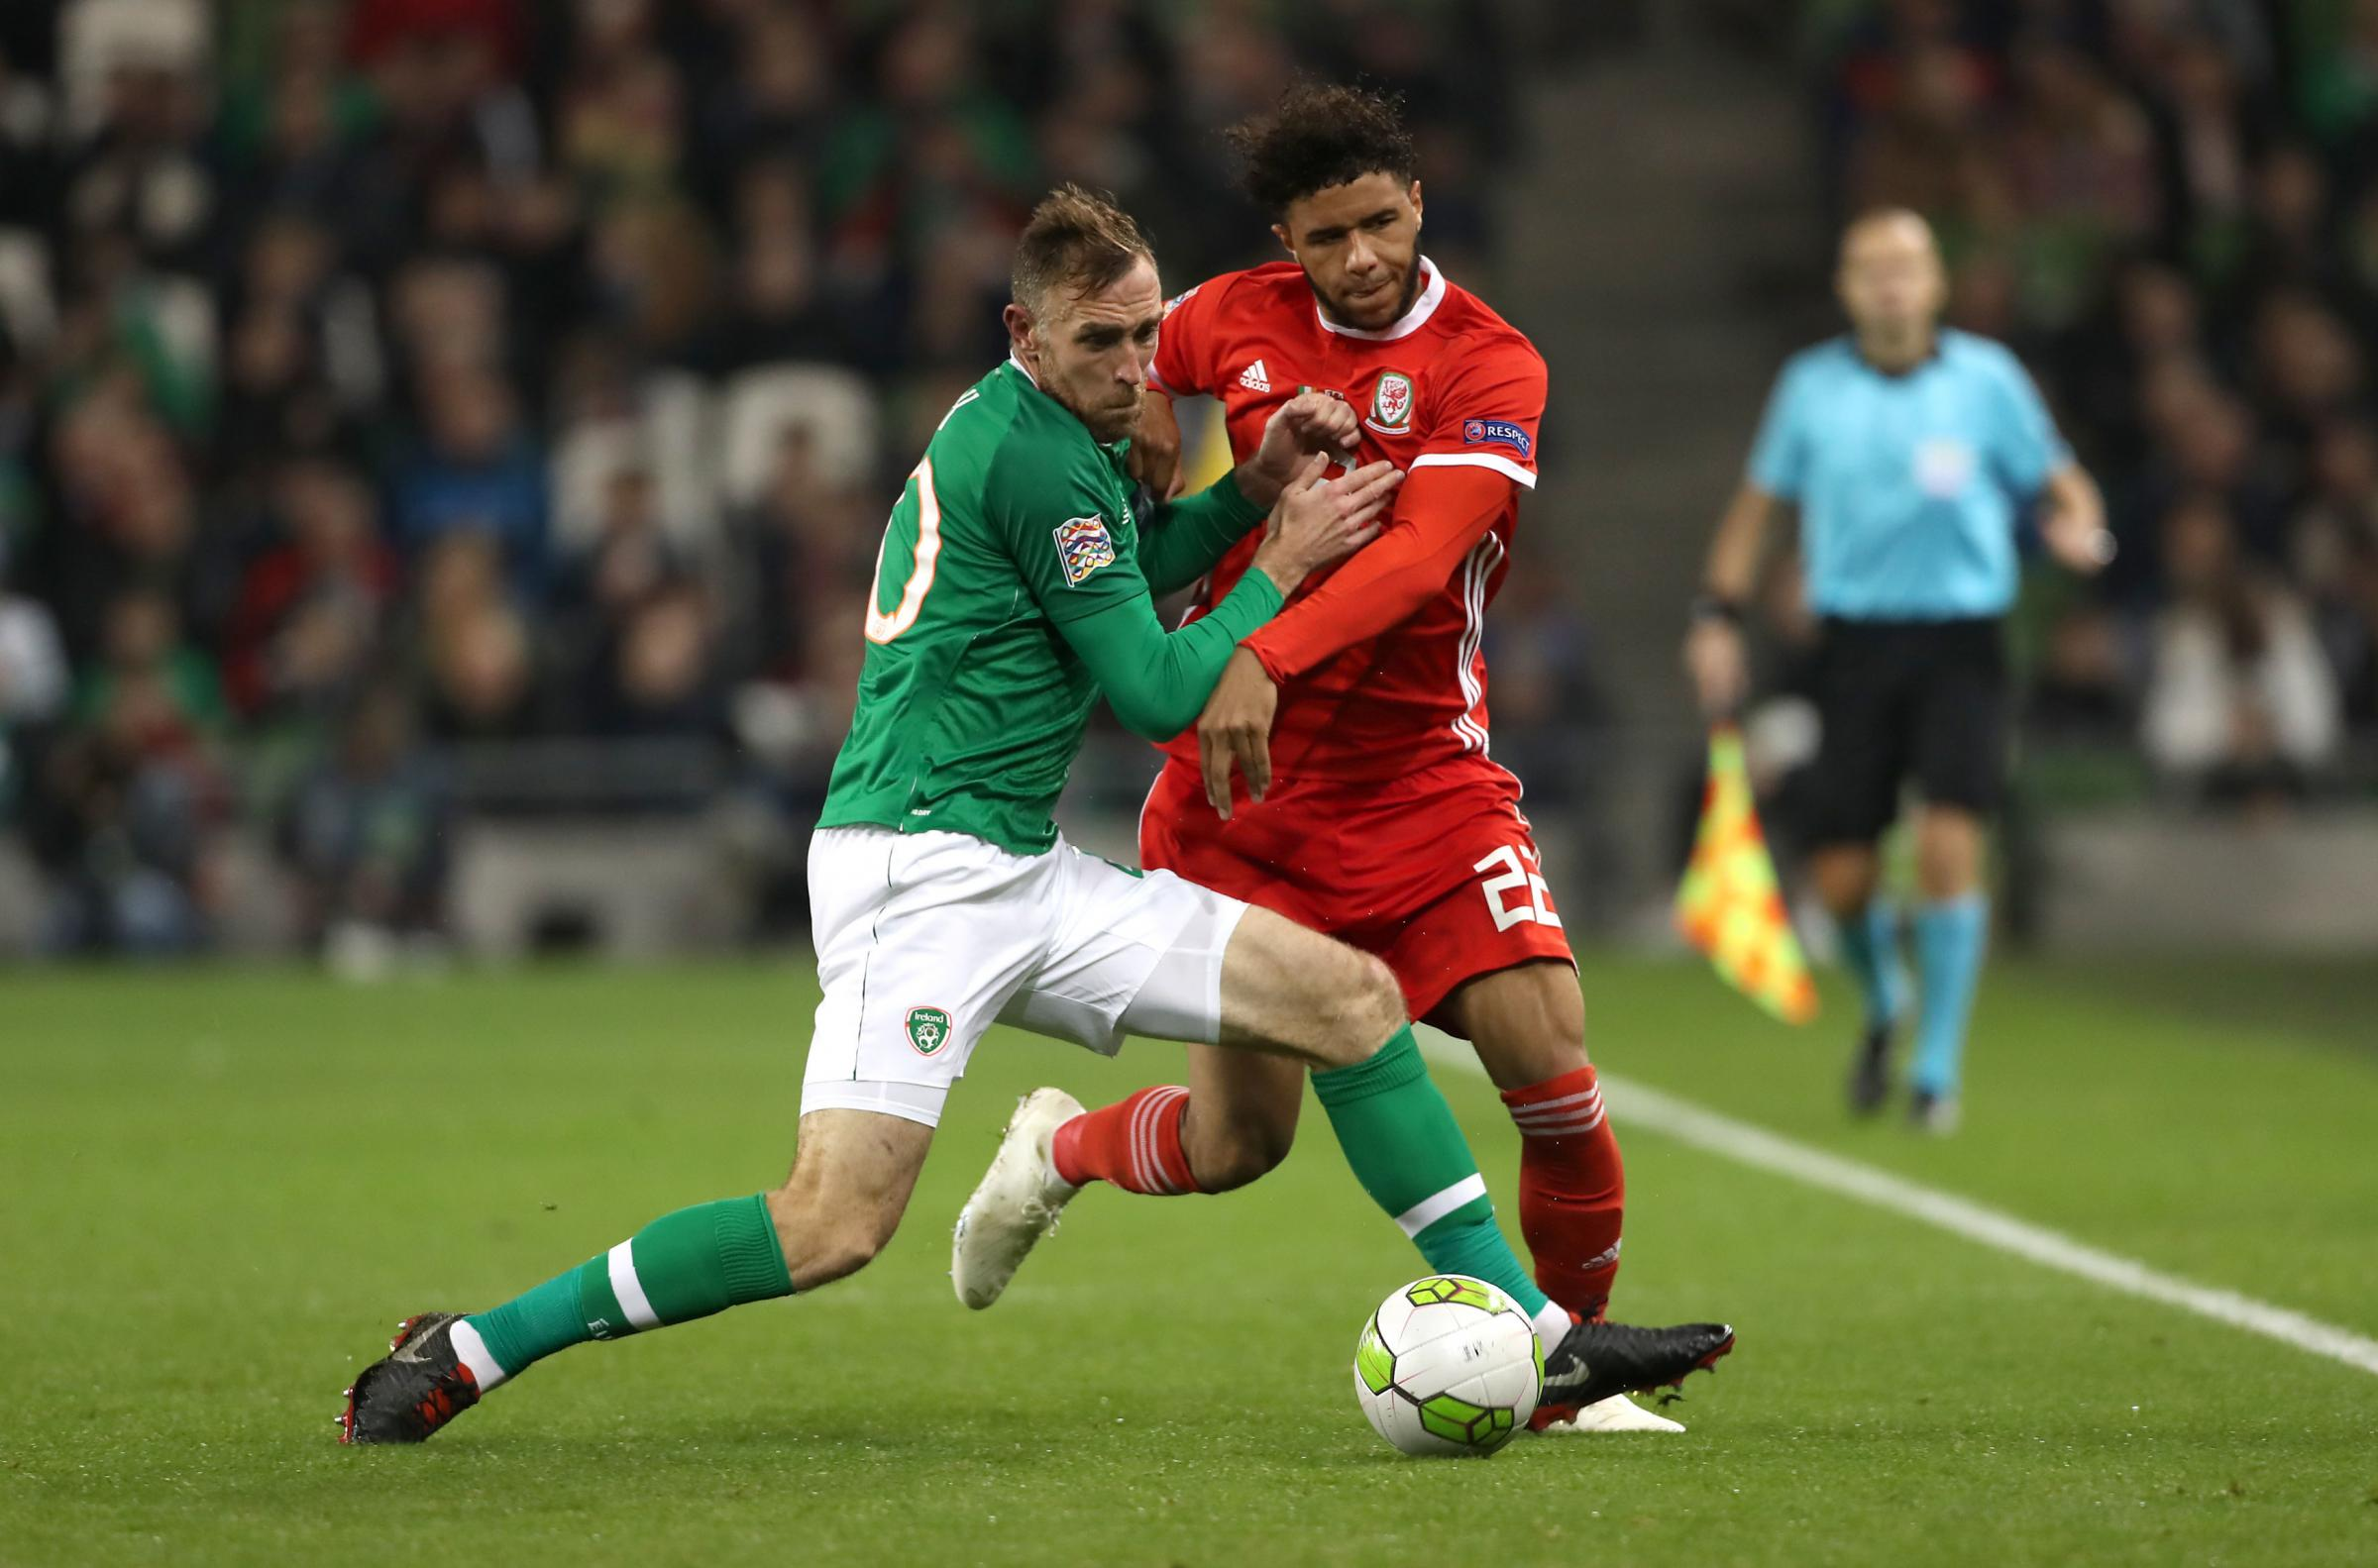 GOOD START: Tyler Roberts, right, in action for Wales in Dublin. Picture: Liam McBurney/PA Wire